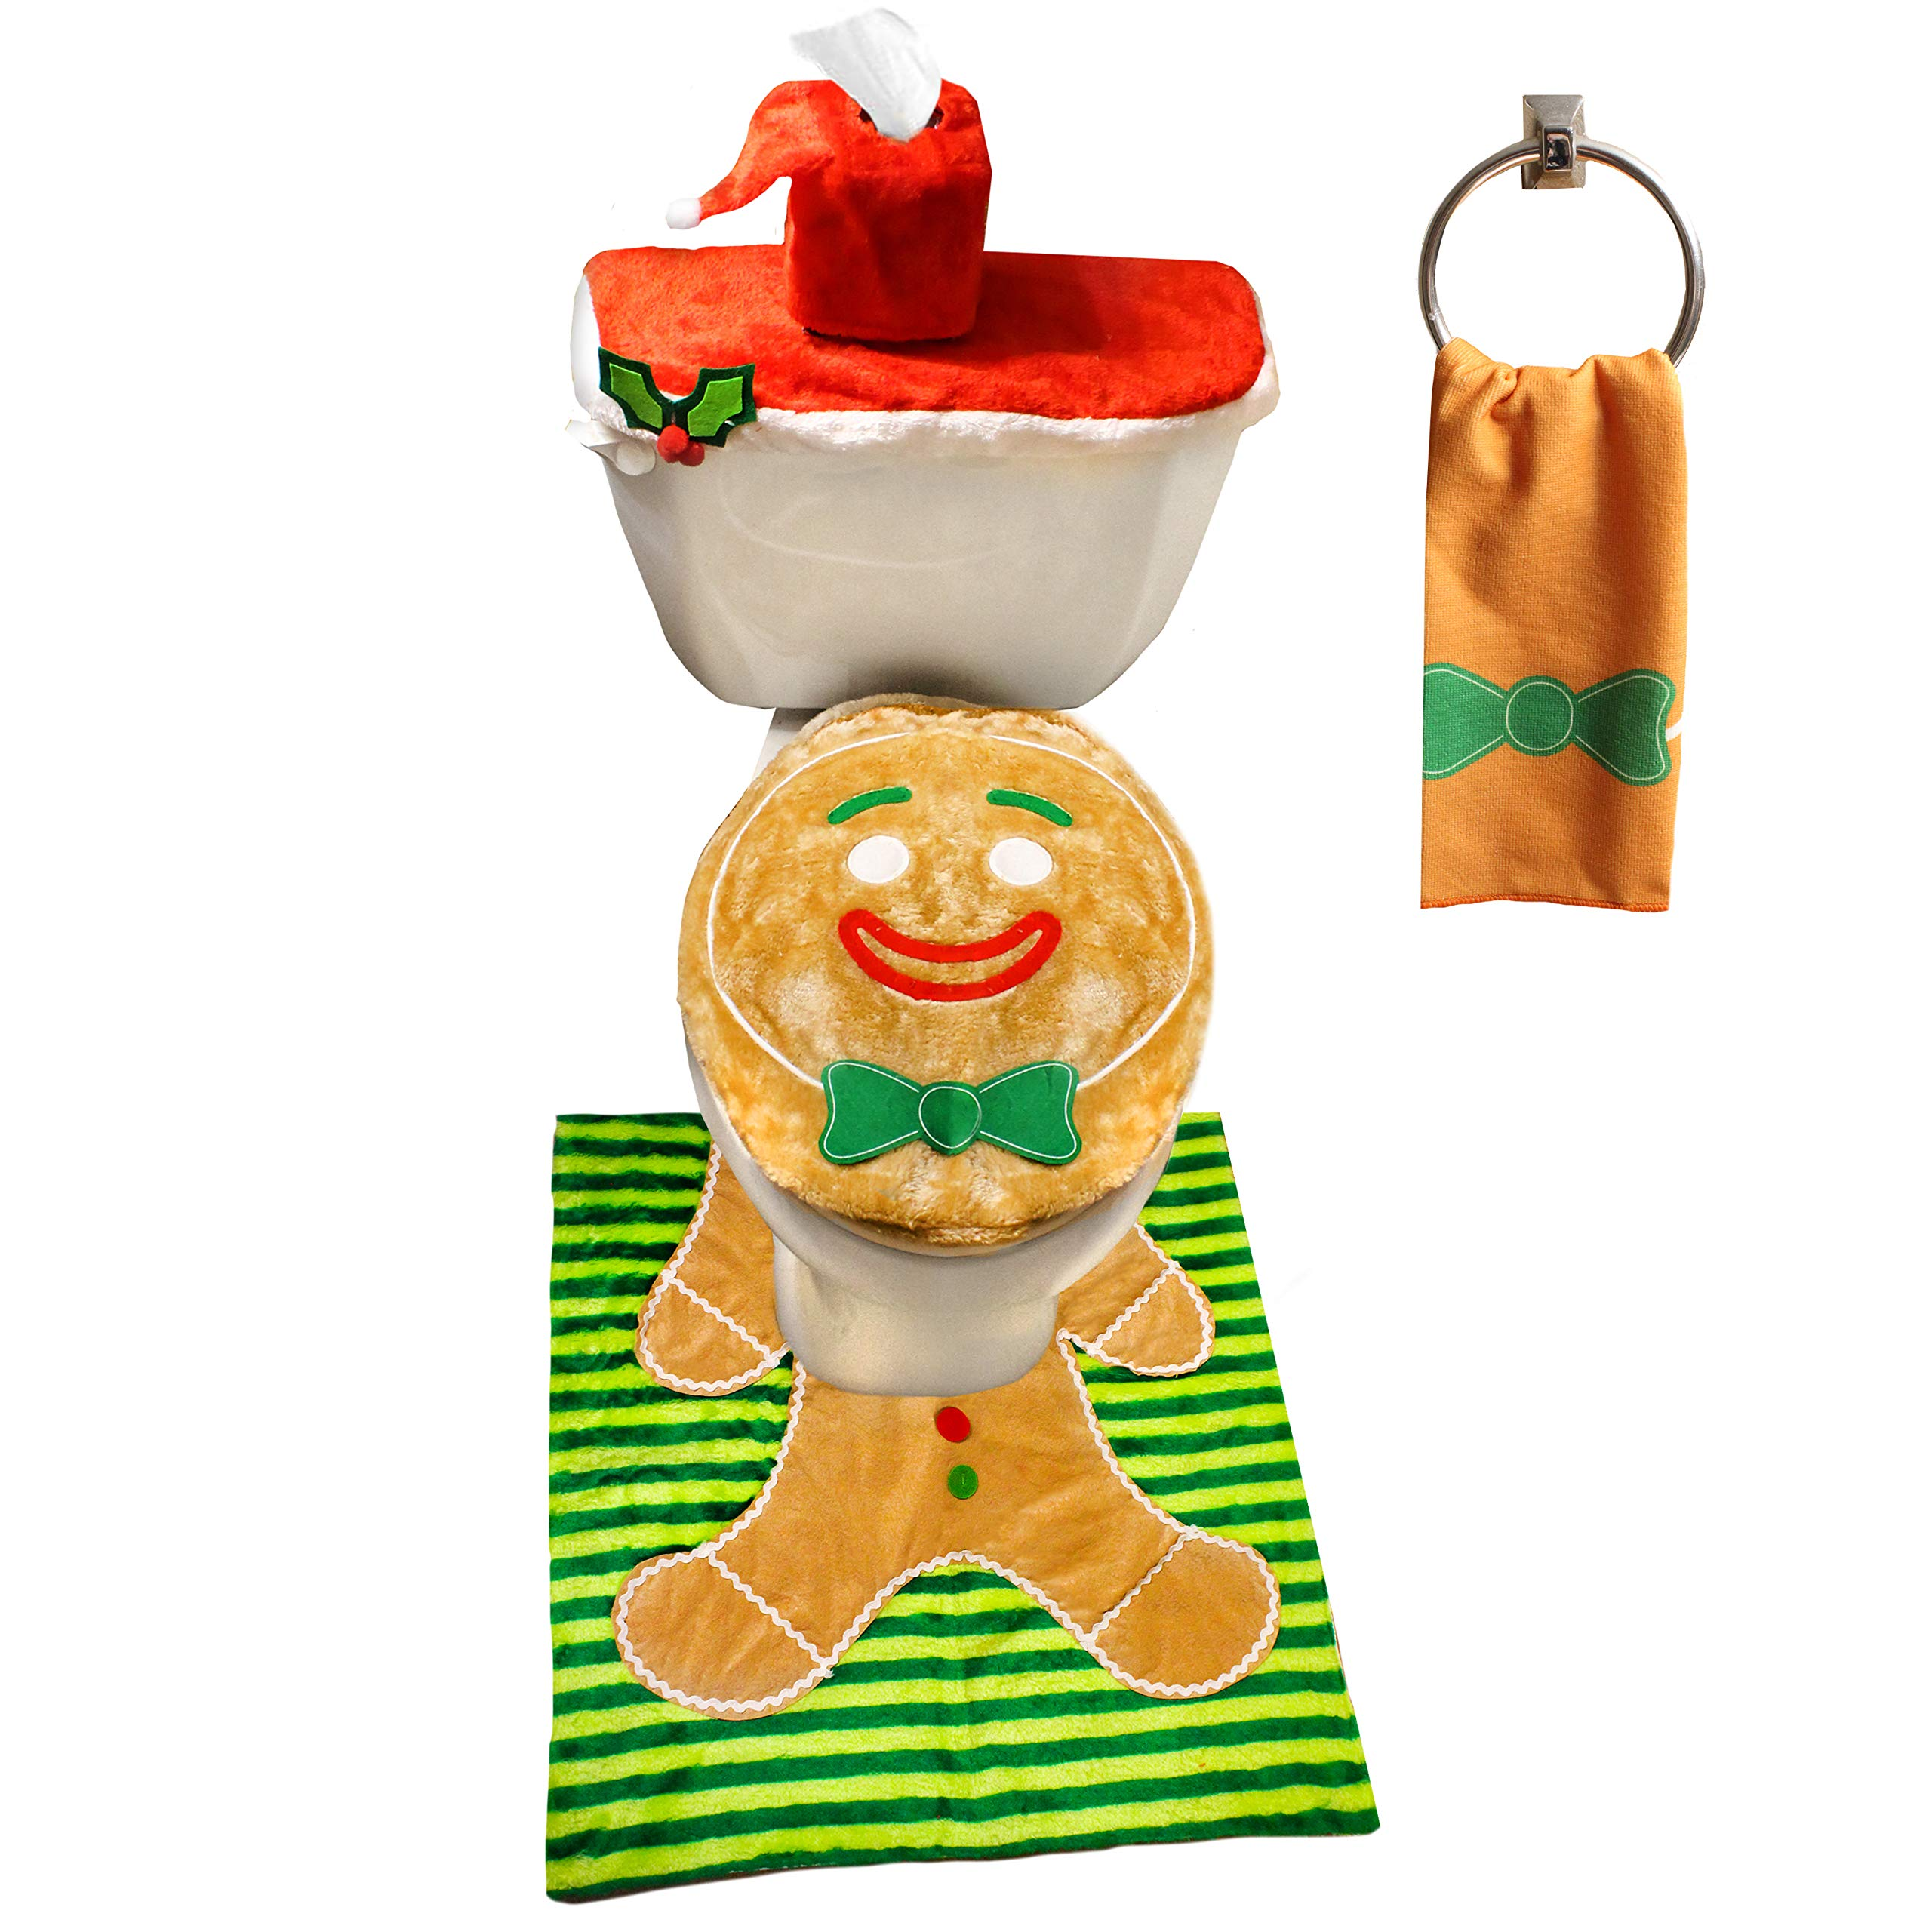 JOYIN 5 Pieces Christmas Gingerbread Man Theme Bathroom Decoration Set w/Toilet Seat Cover, Rugs, Tank Cover, Toilet Paper Box Cover and Santa Towel for Xmas Indoor Décor, Party Favors